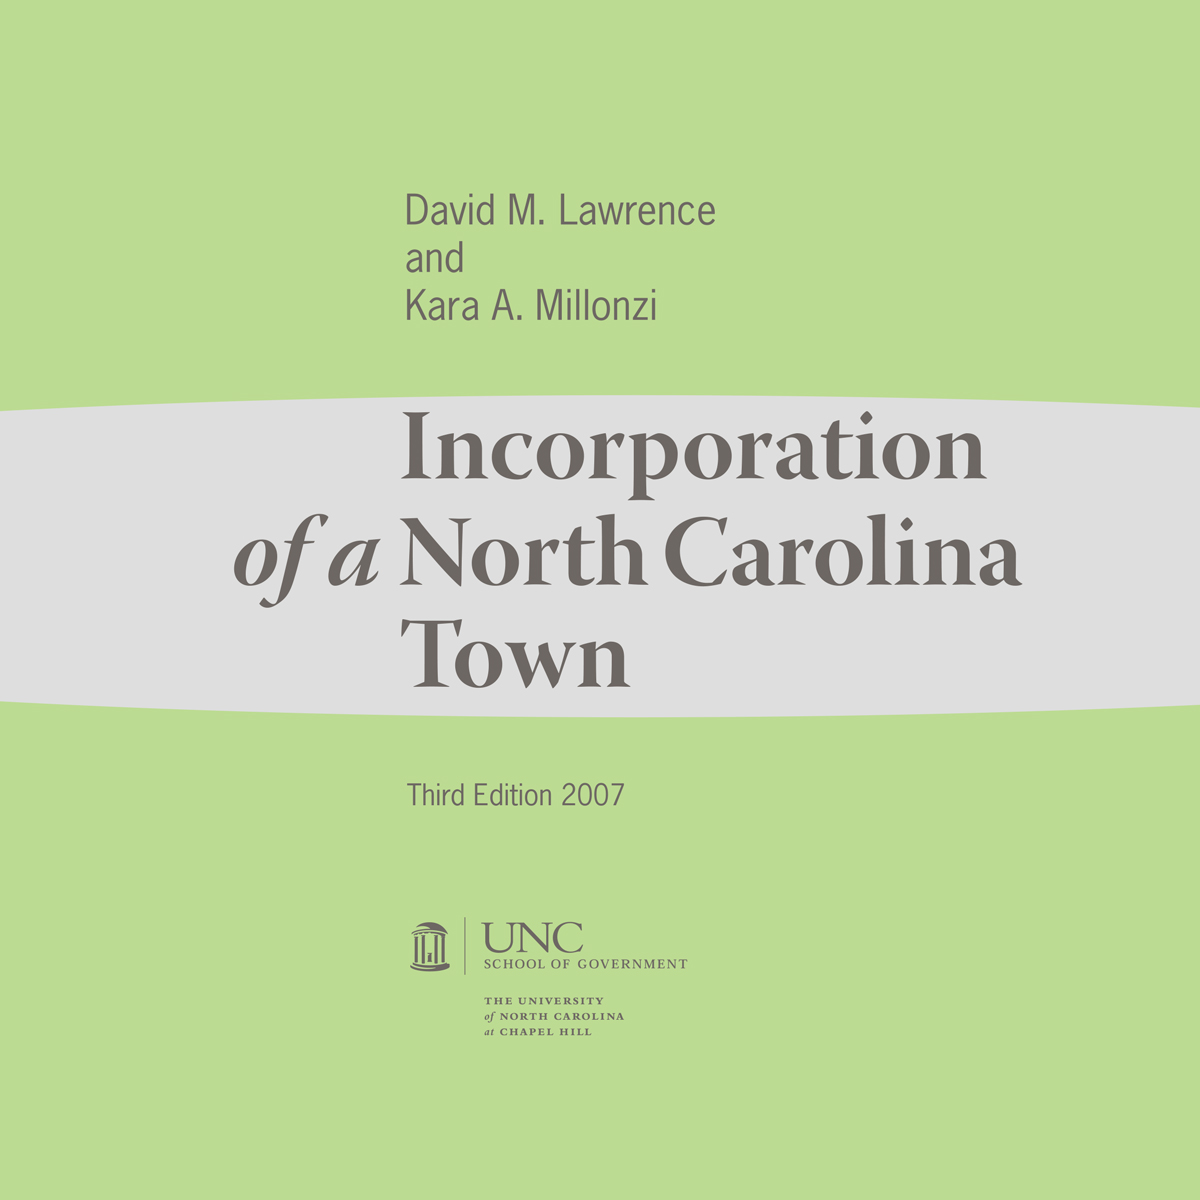 Cover image for Incorporation of a North Carolina Town, Third Edition